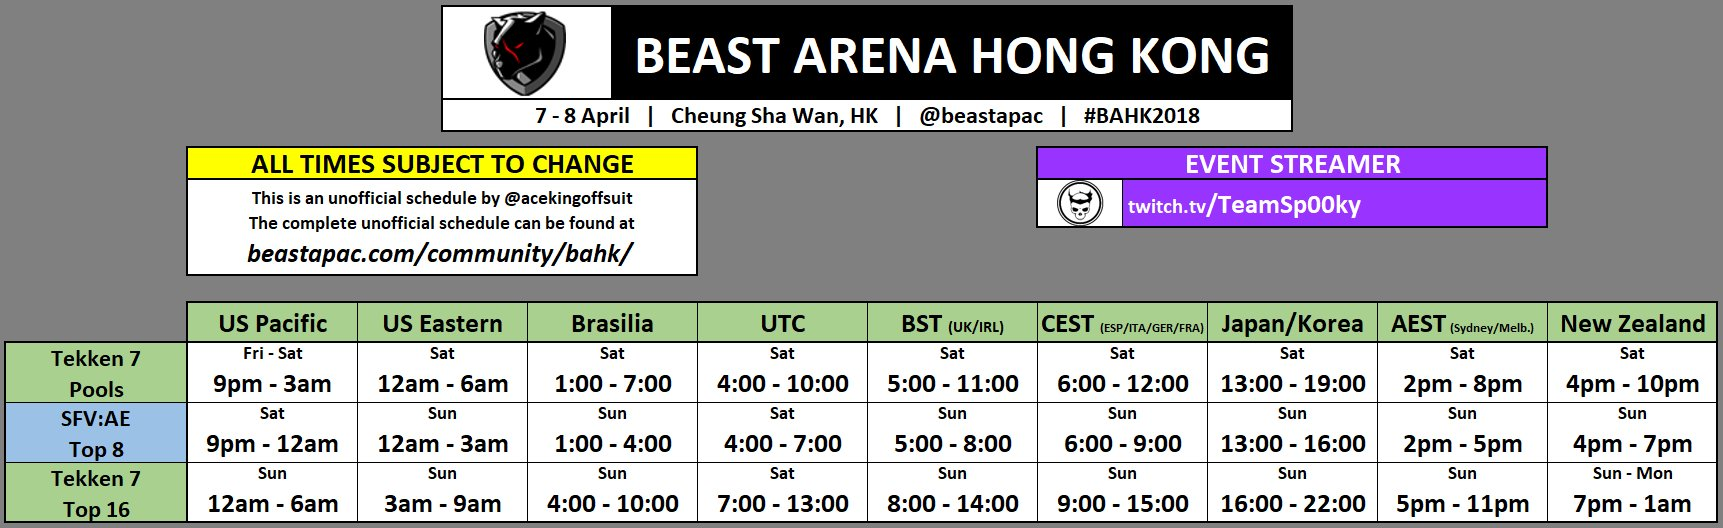 Beast Arena Hong Kong Event Schedule 1 out of 1 image gallery